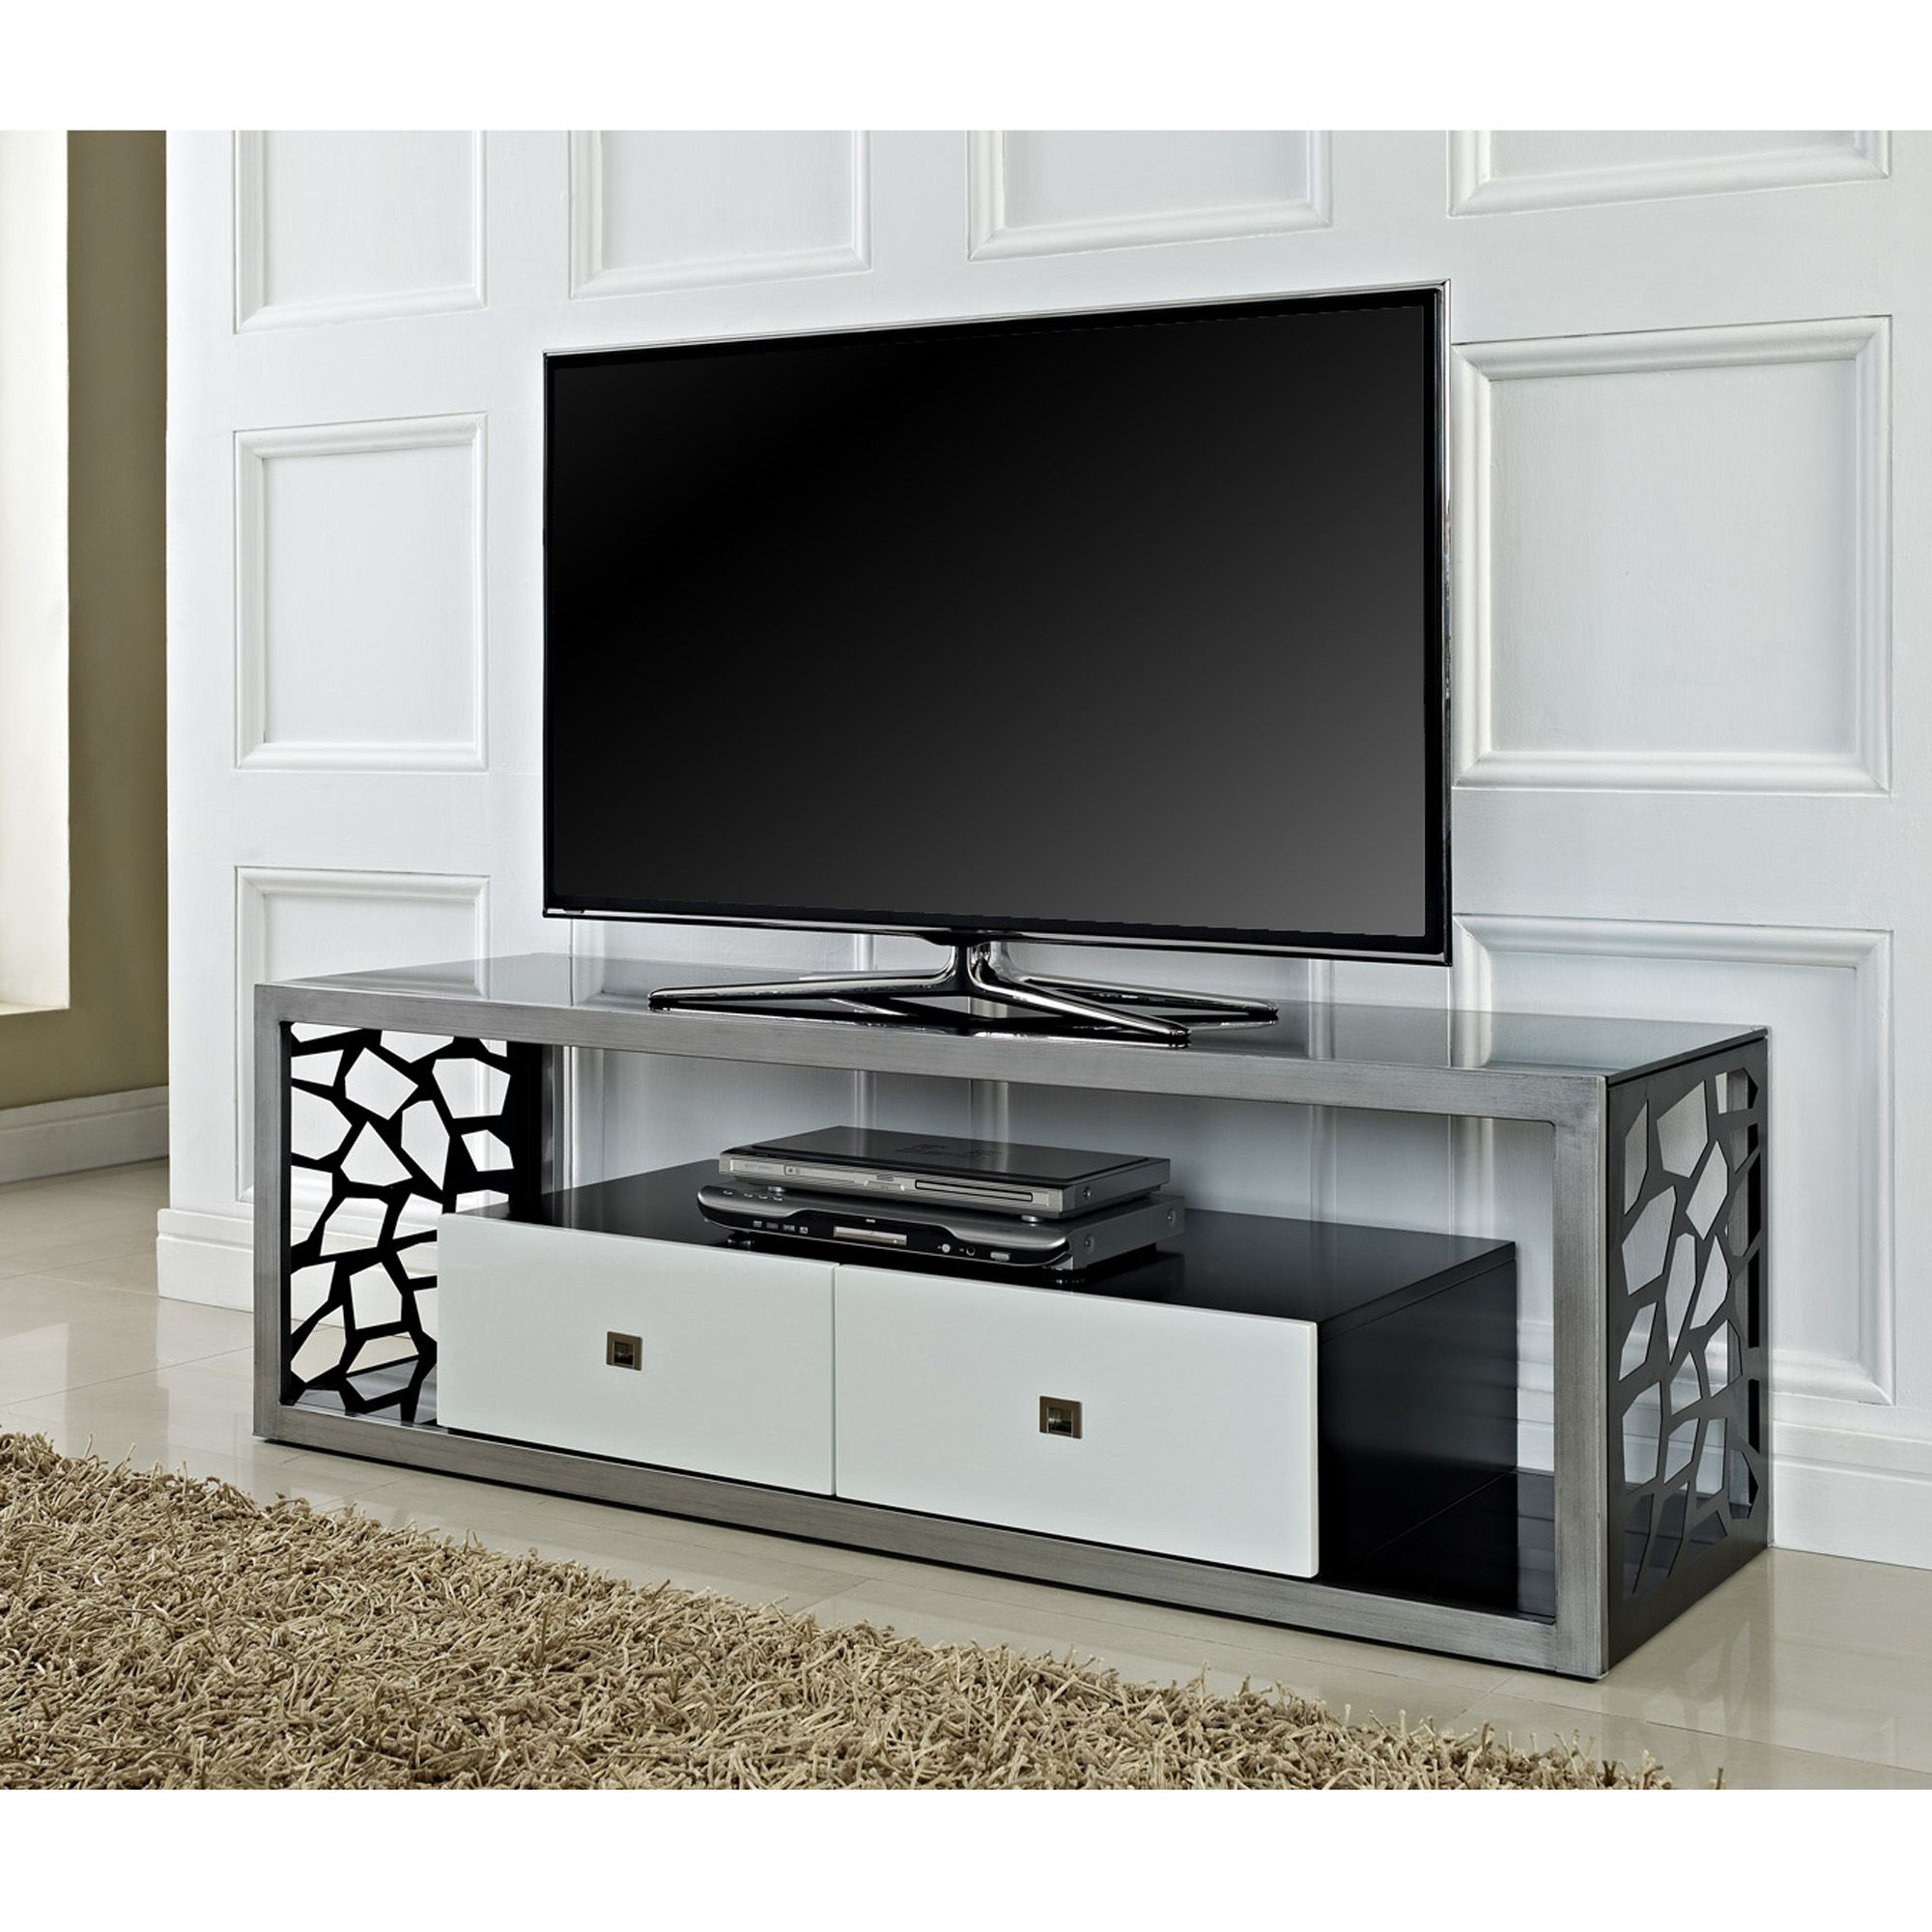 "Beautiful 60"" Mosaic Tv Stand, Brushed Silver Frame With White With Regard To Newest Silver Tv Stands (View 2 of 20)"